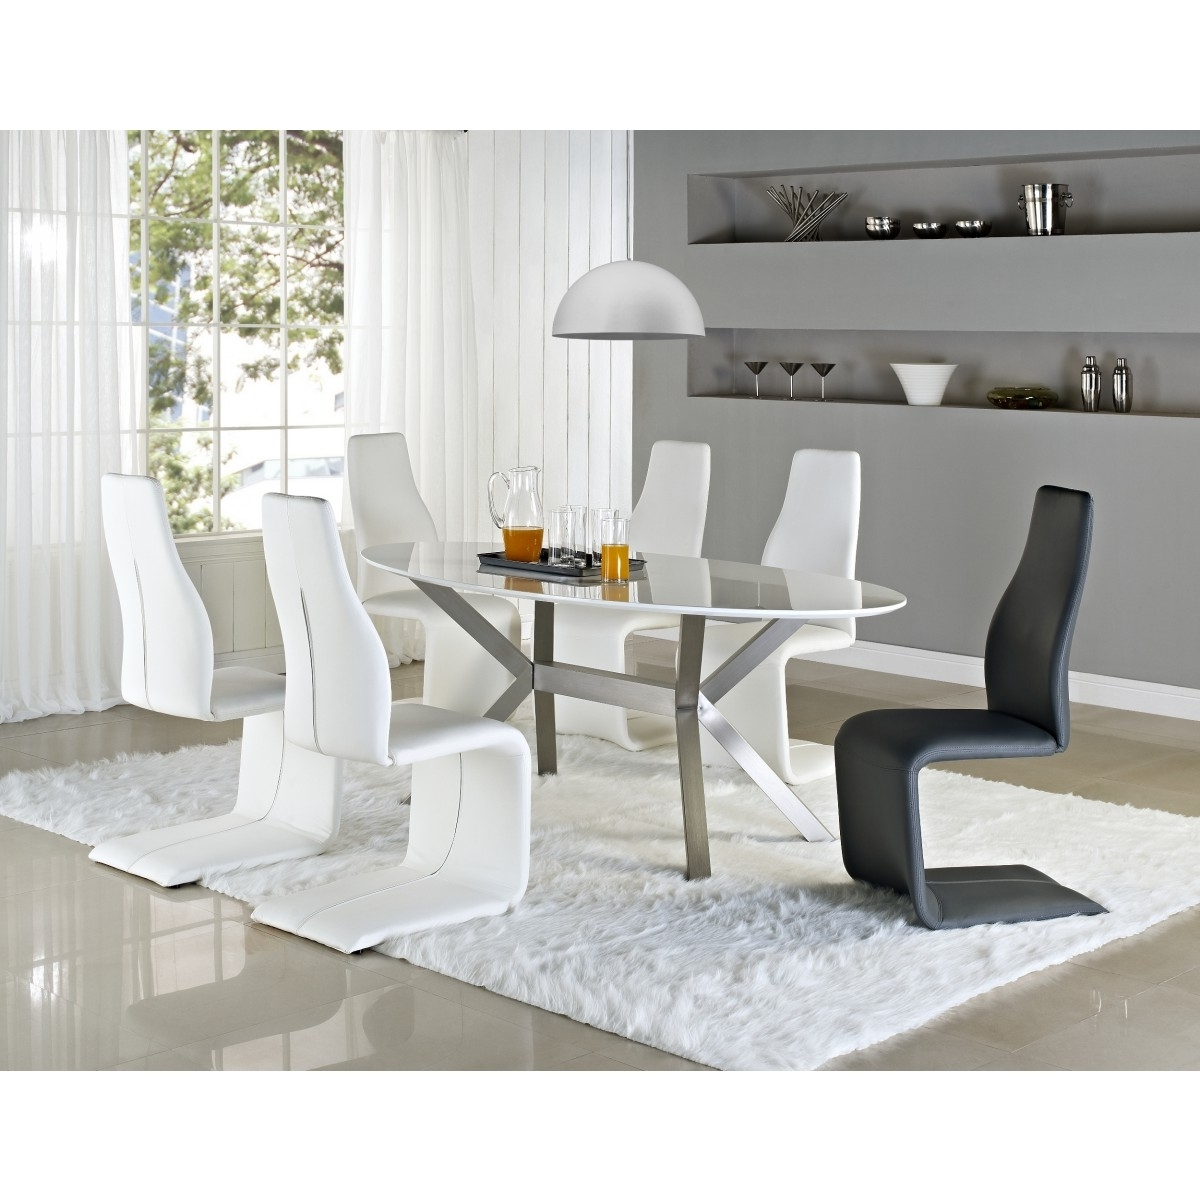 Lumen Home Designslumen Home Designs Intended For Shiny White Dining Tables (View 18 of 25)